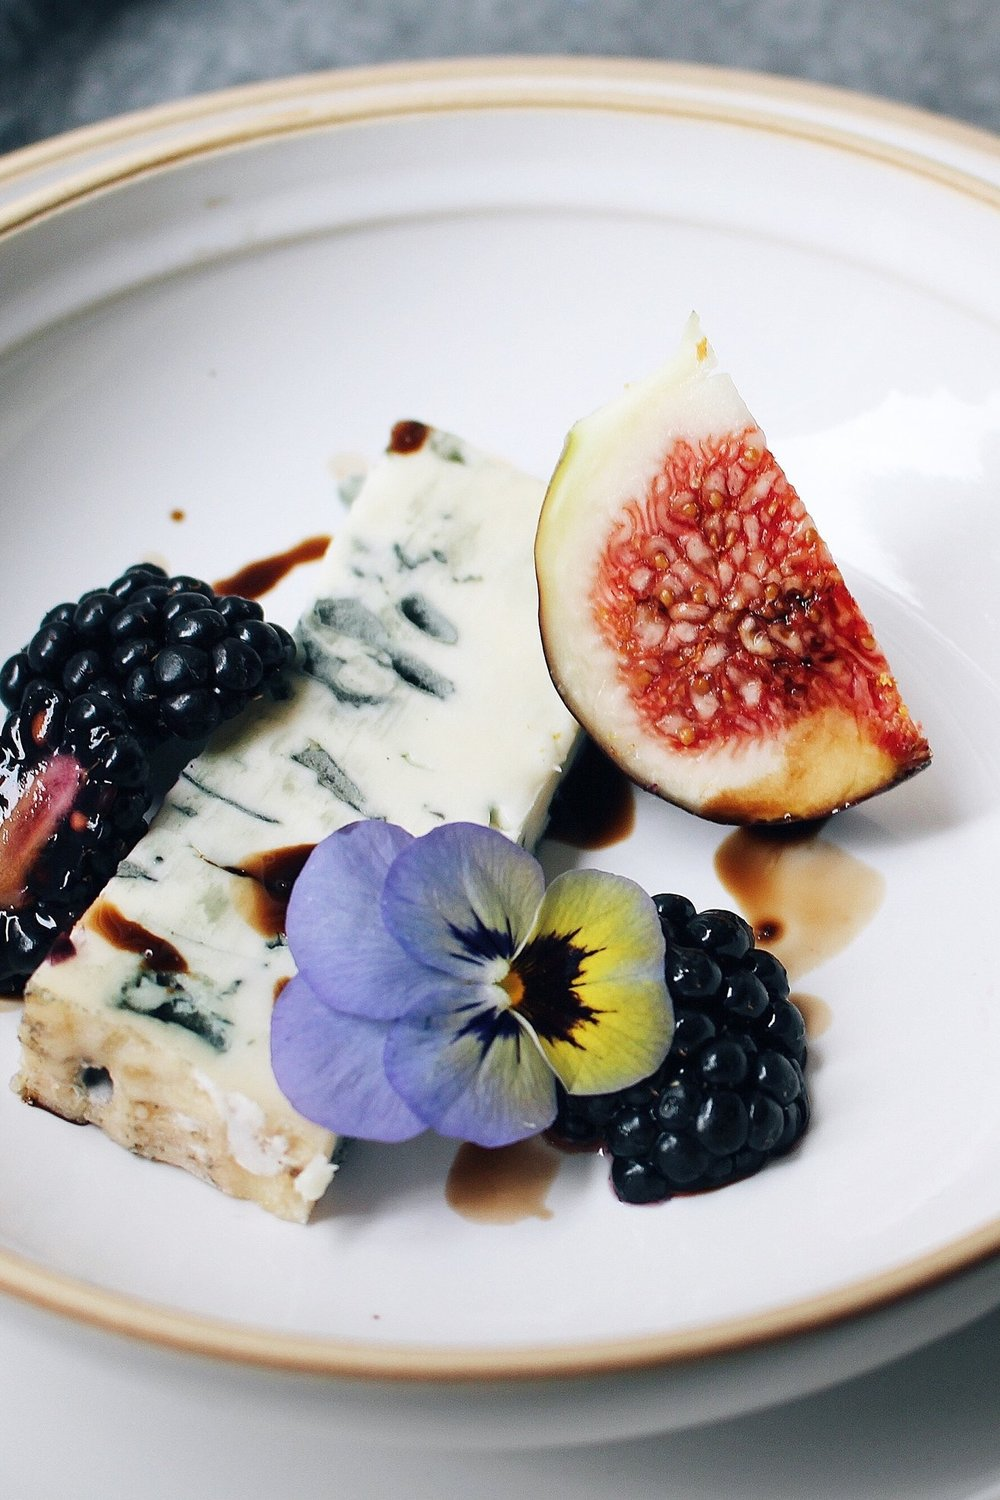 Gorgonzola, blueberries, fig, edible flower, balsamic vinegar reduction.